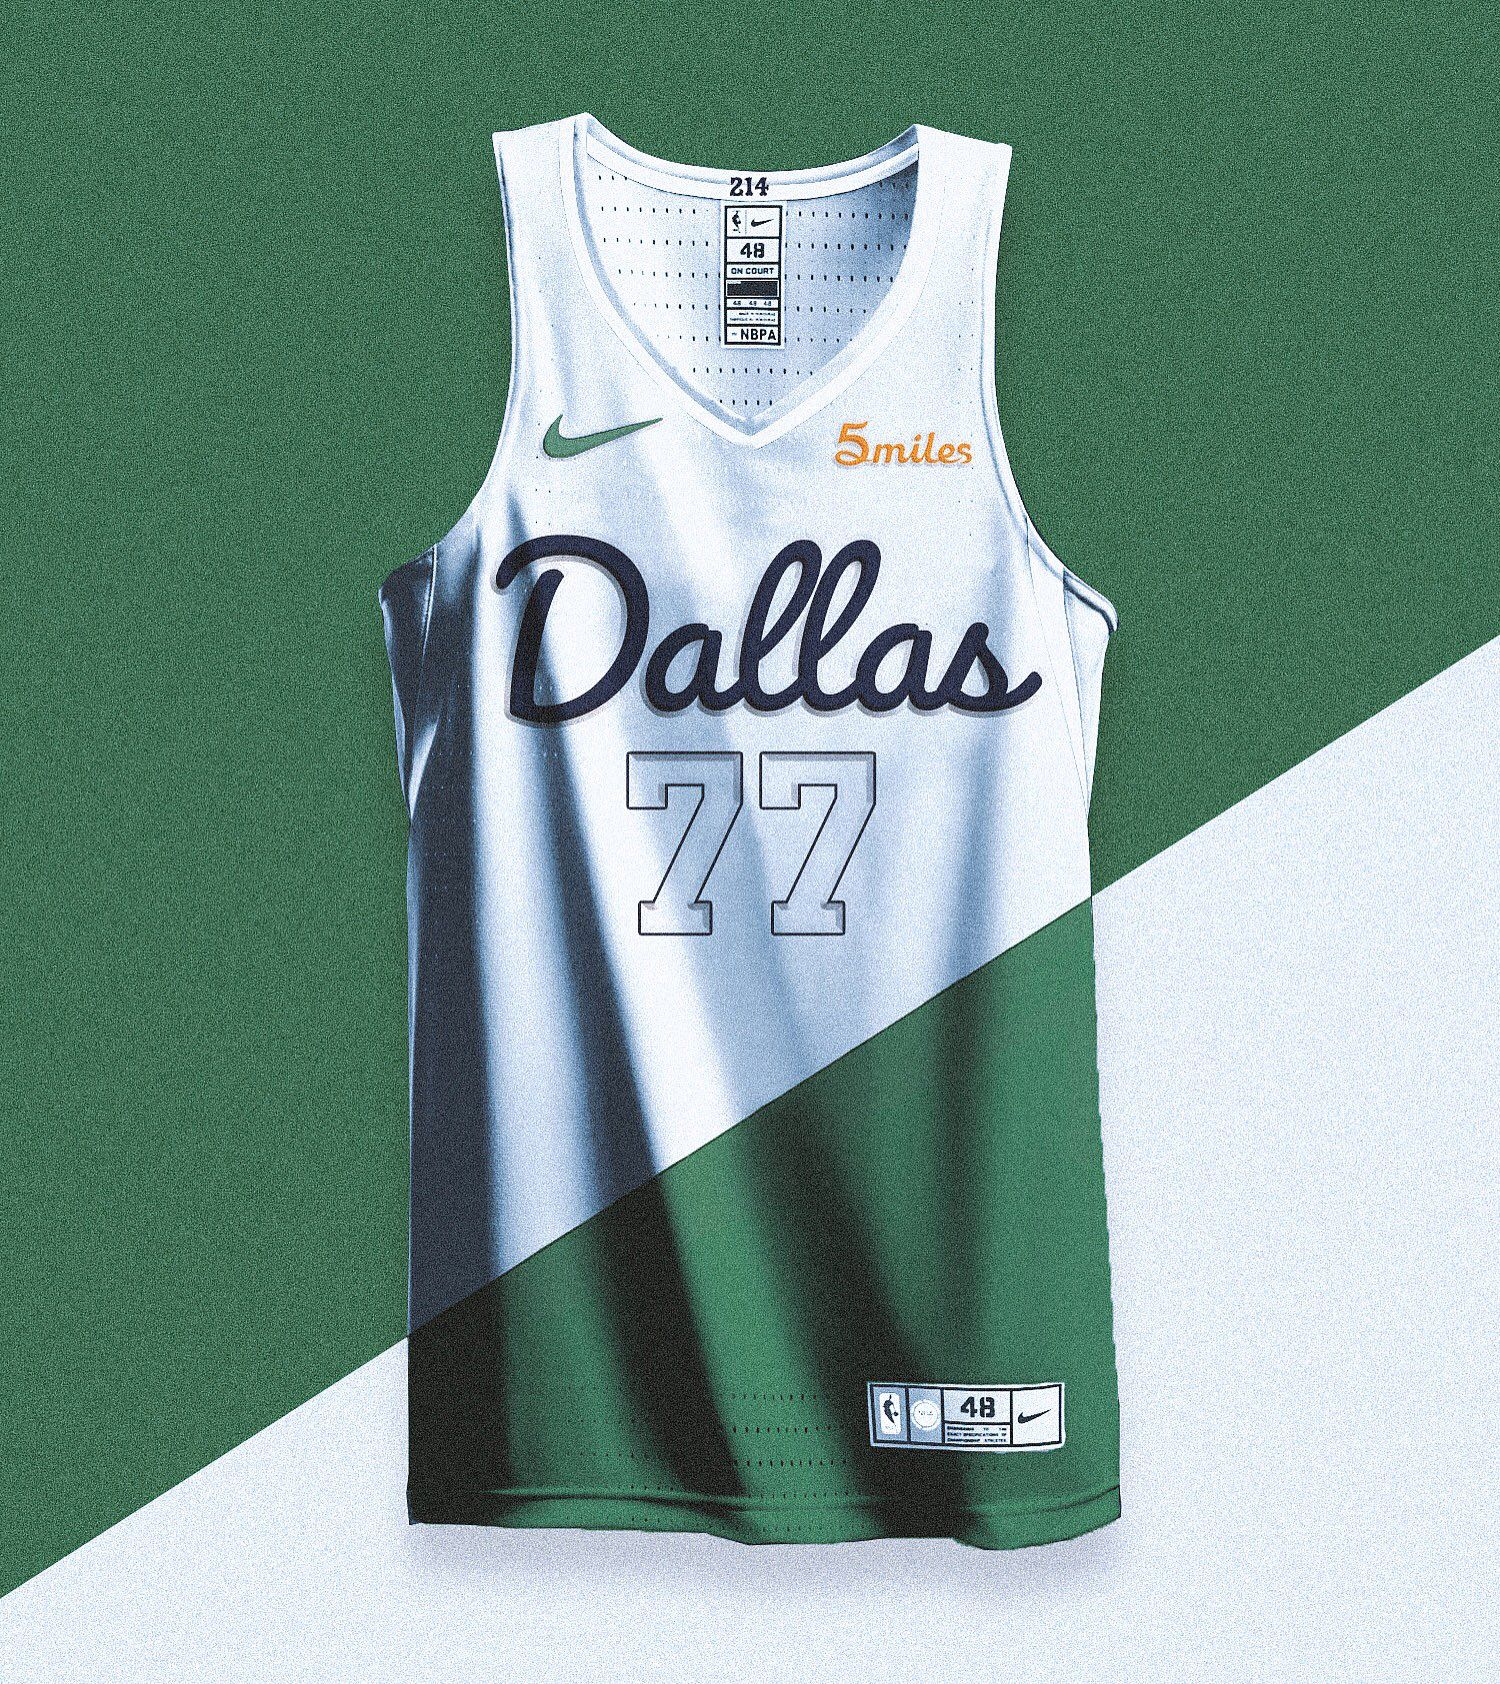 Pin By Camil Touil On Sports Graphics Basketball Uniforms Design Basketball Design Basketball Kit